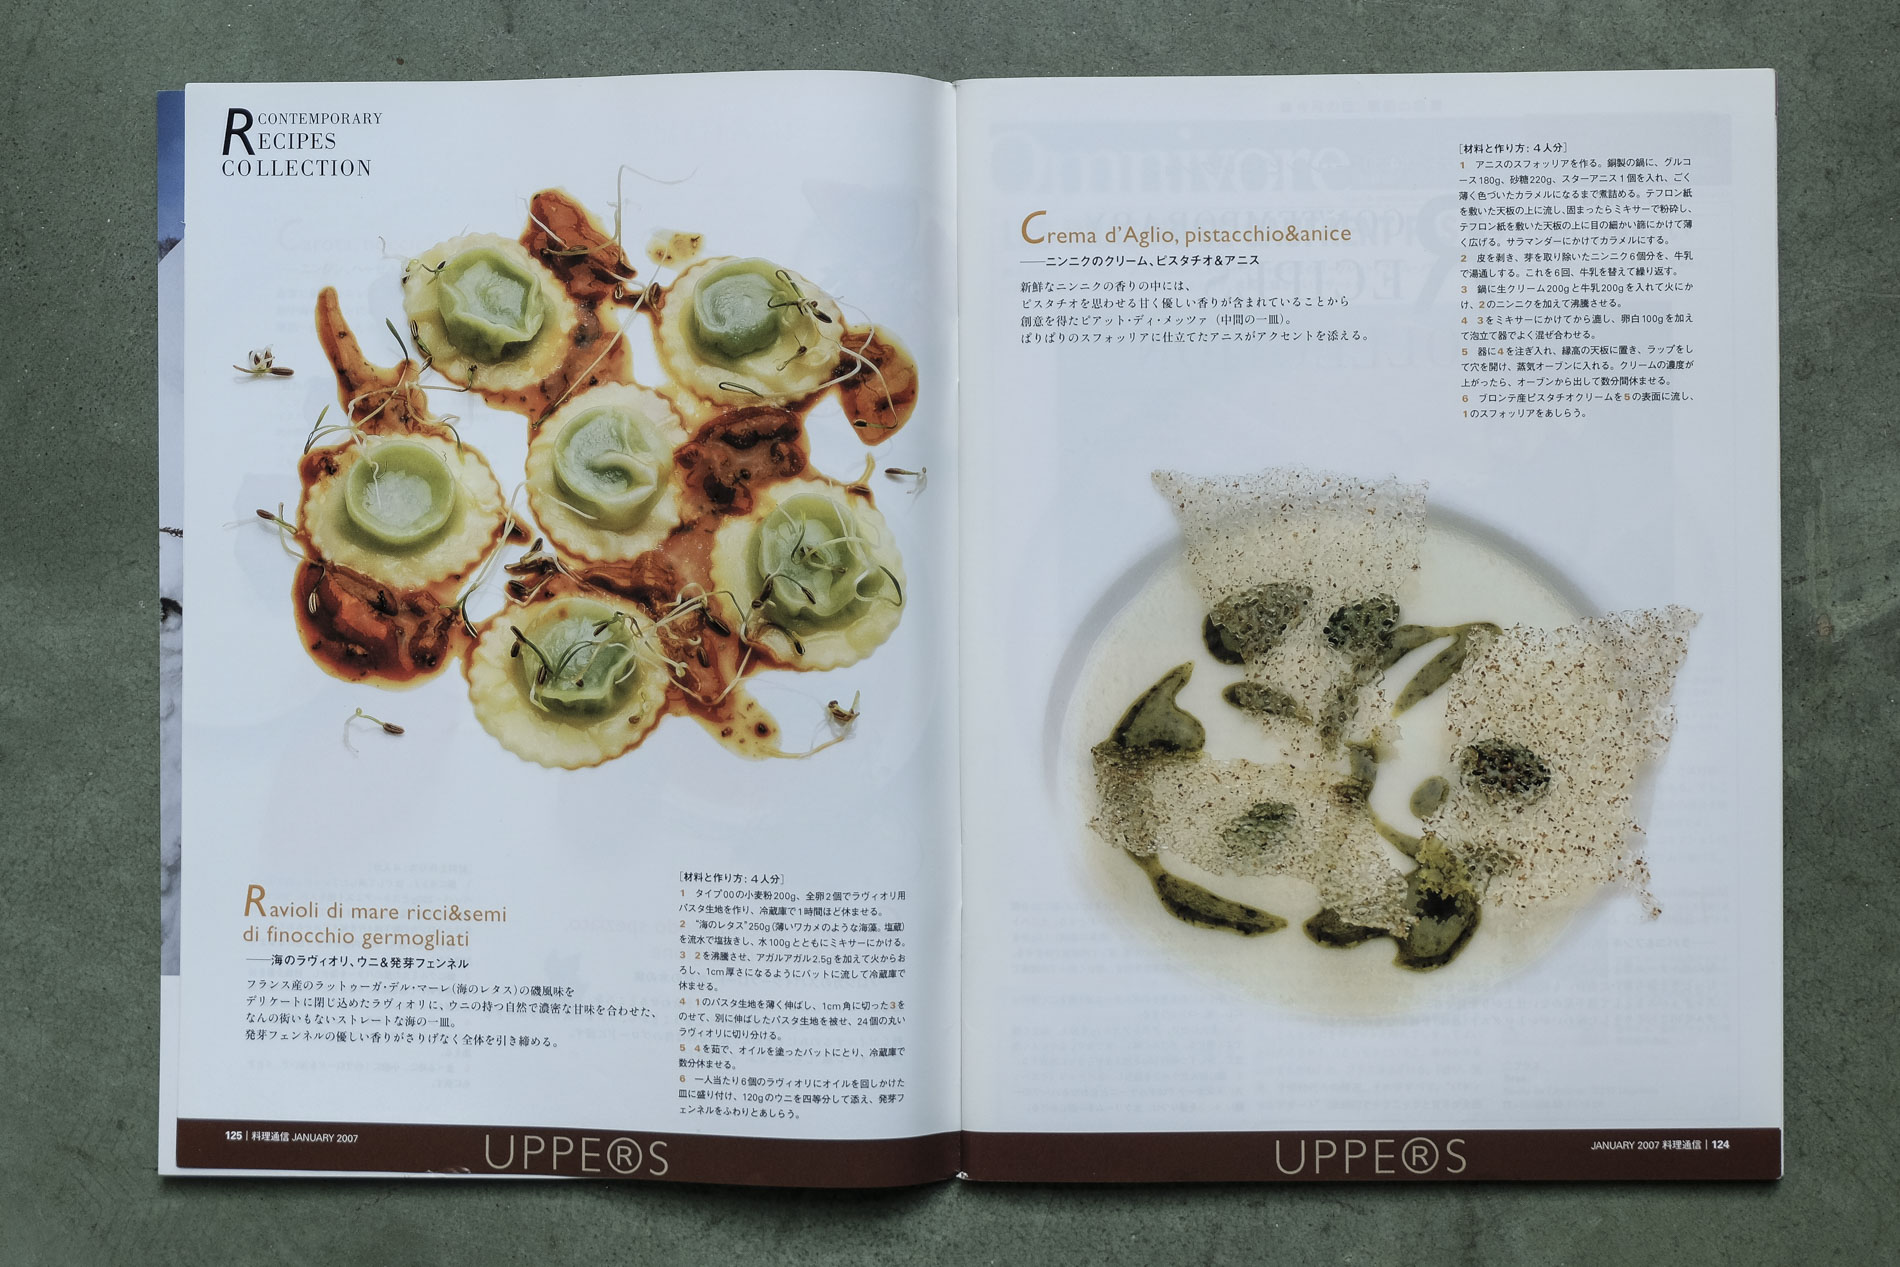 The Cuisine Magazine, Japan © Matteo Brogi